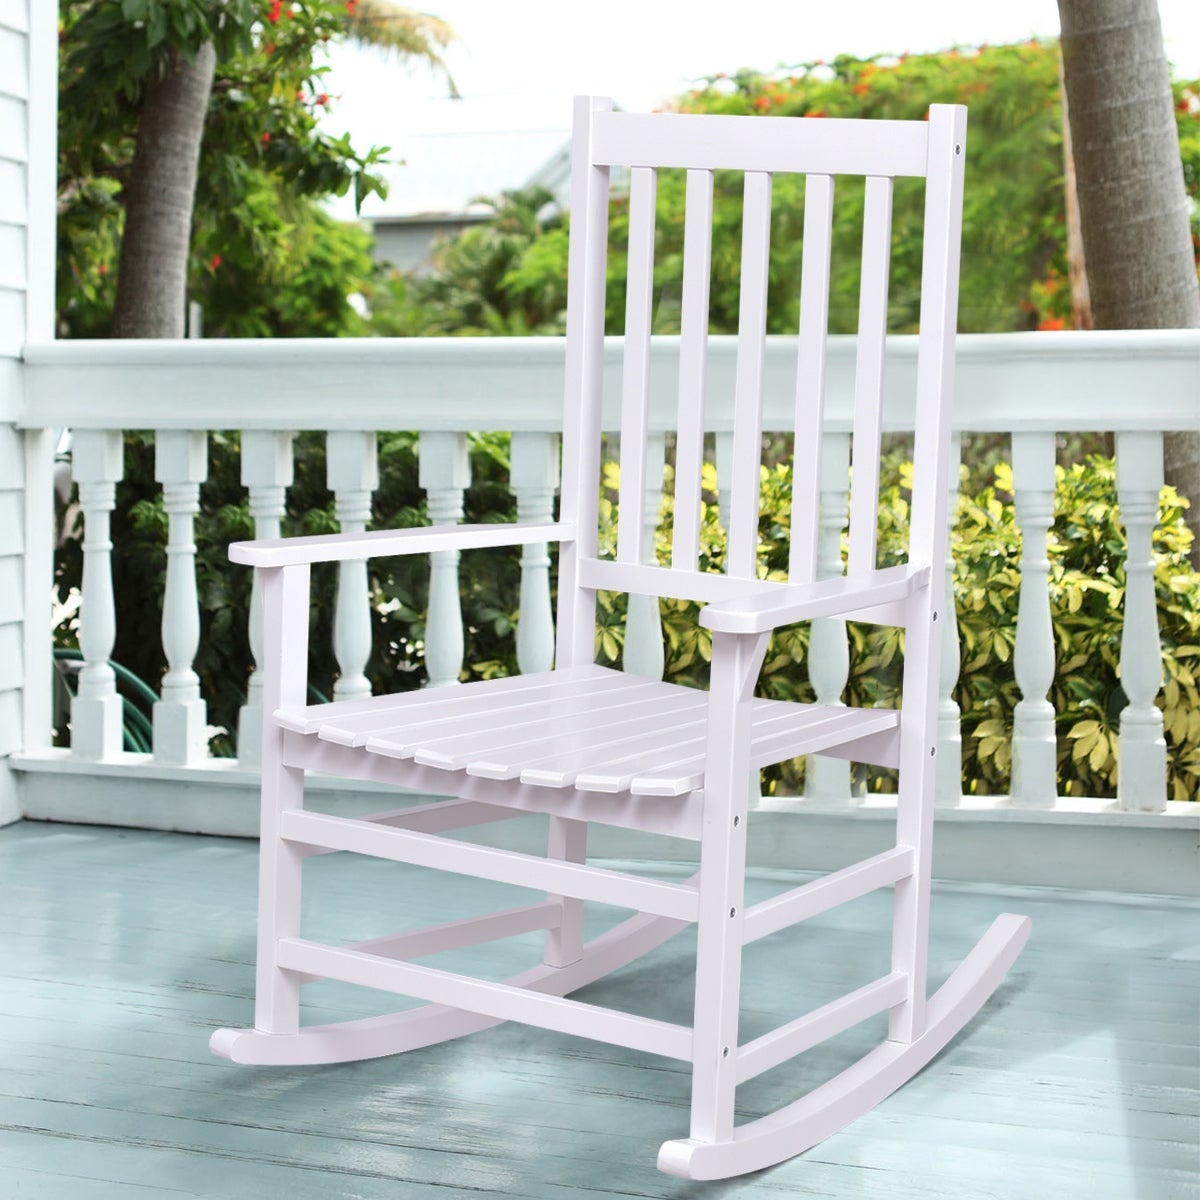 Fine Costway Solid Wood Rocking Chair Rocker Porch Indoor Outdoor Patio Furniture White Single Inzonedesignstudio Interior Chair Design Inzonedesignstudiocom